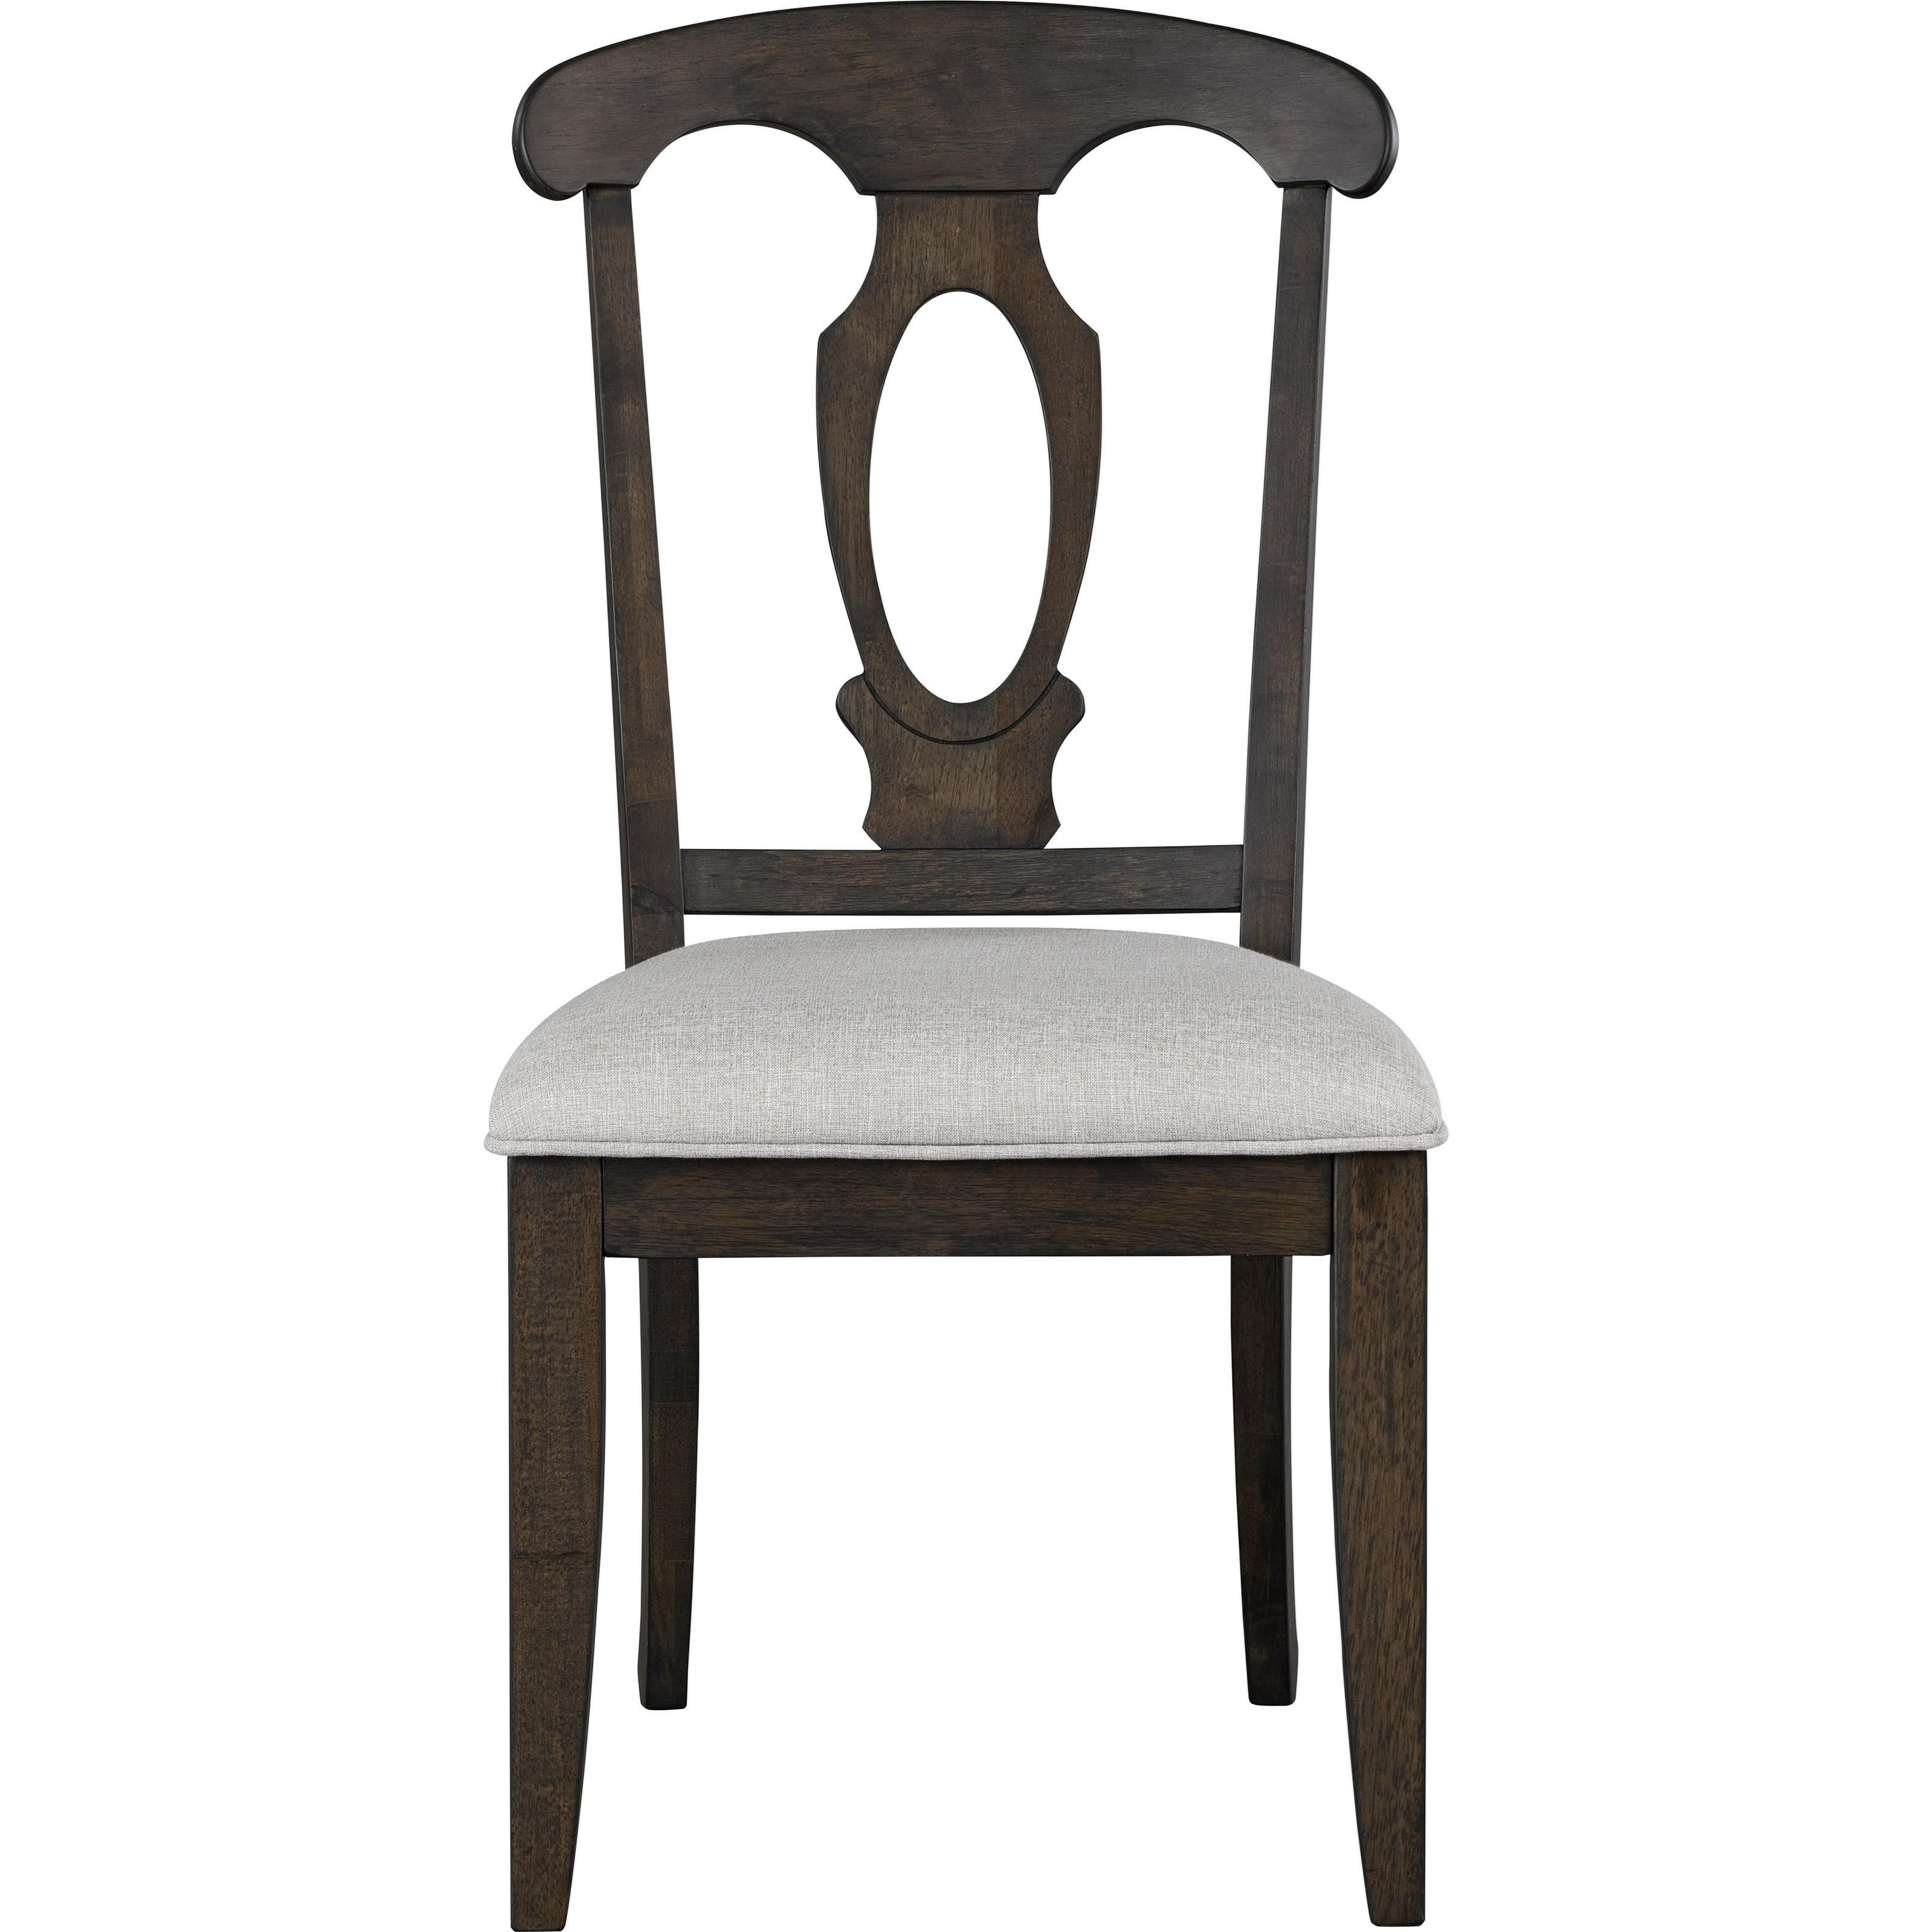 Broyhill Furniture Ashgrove Upholstered Seat Side Chair - Item Number: 4547-581NUT